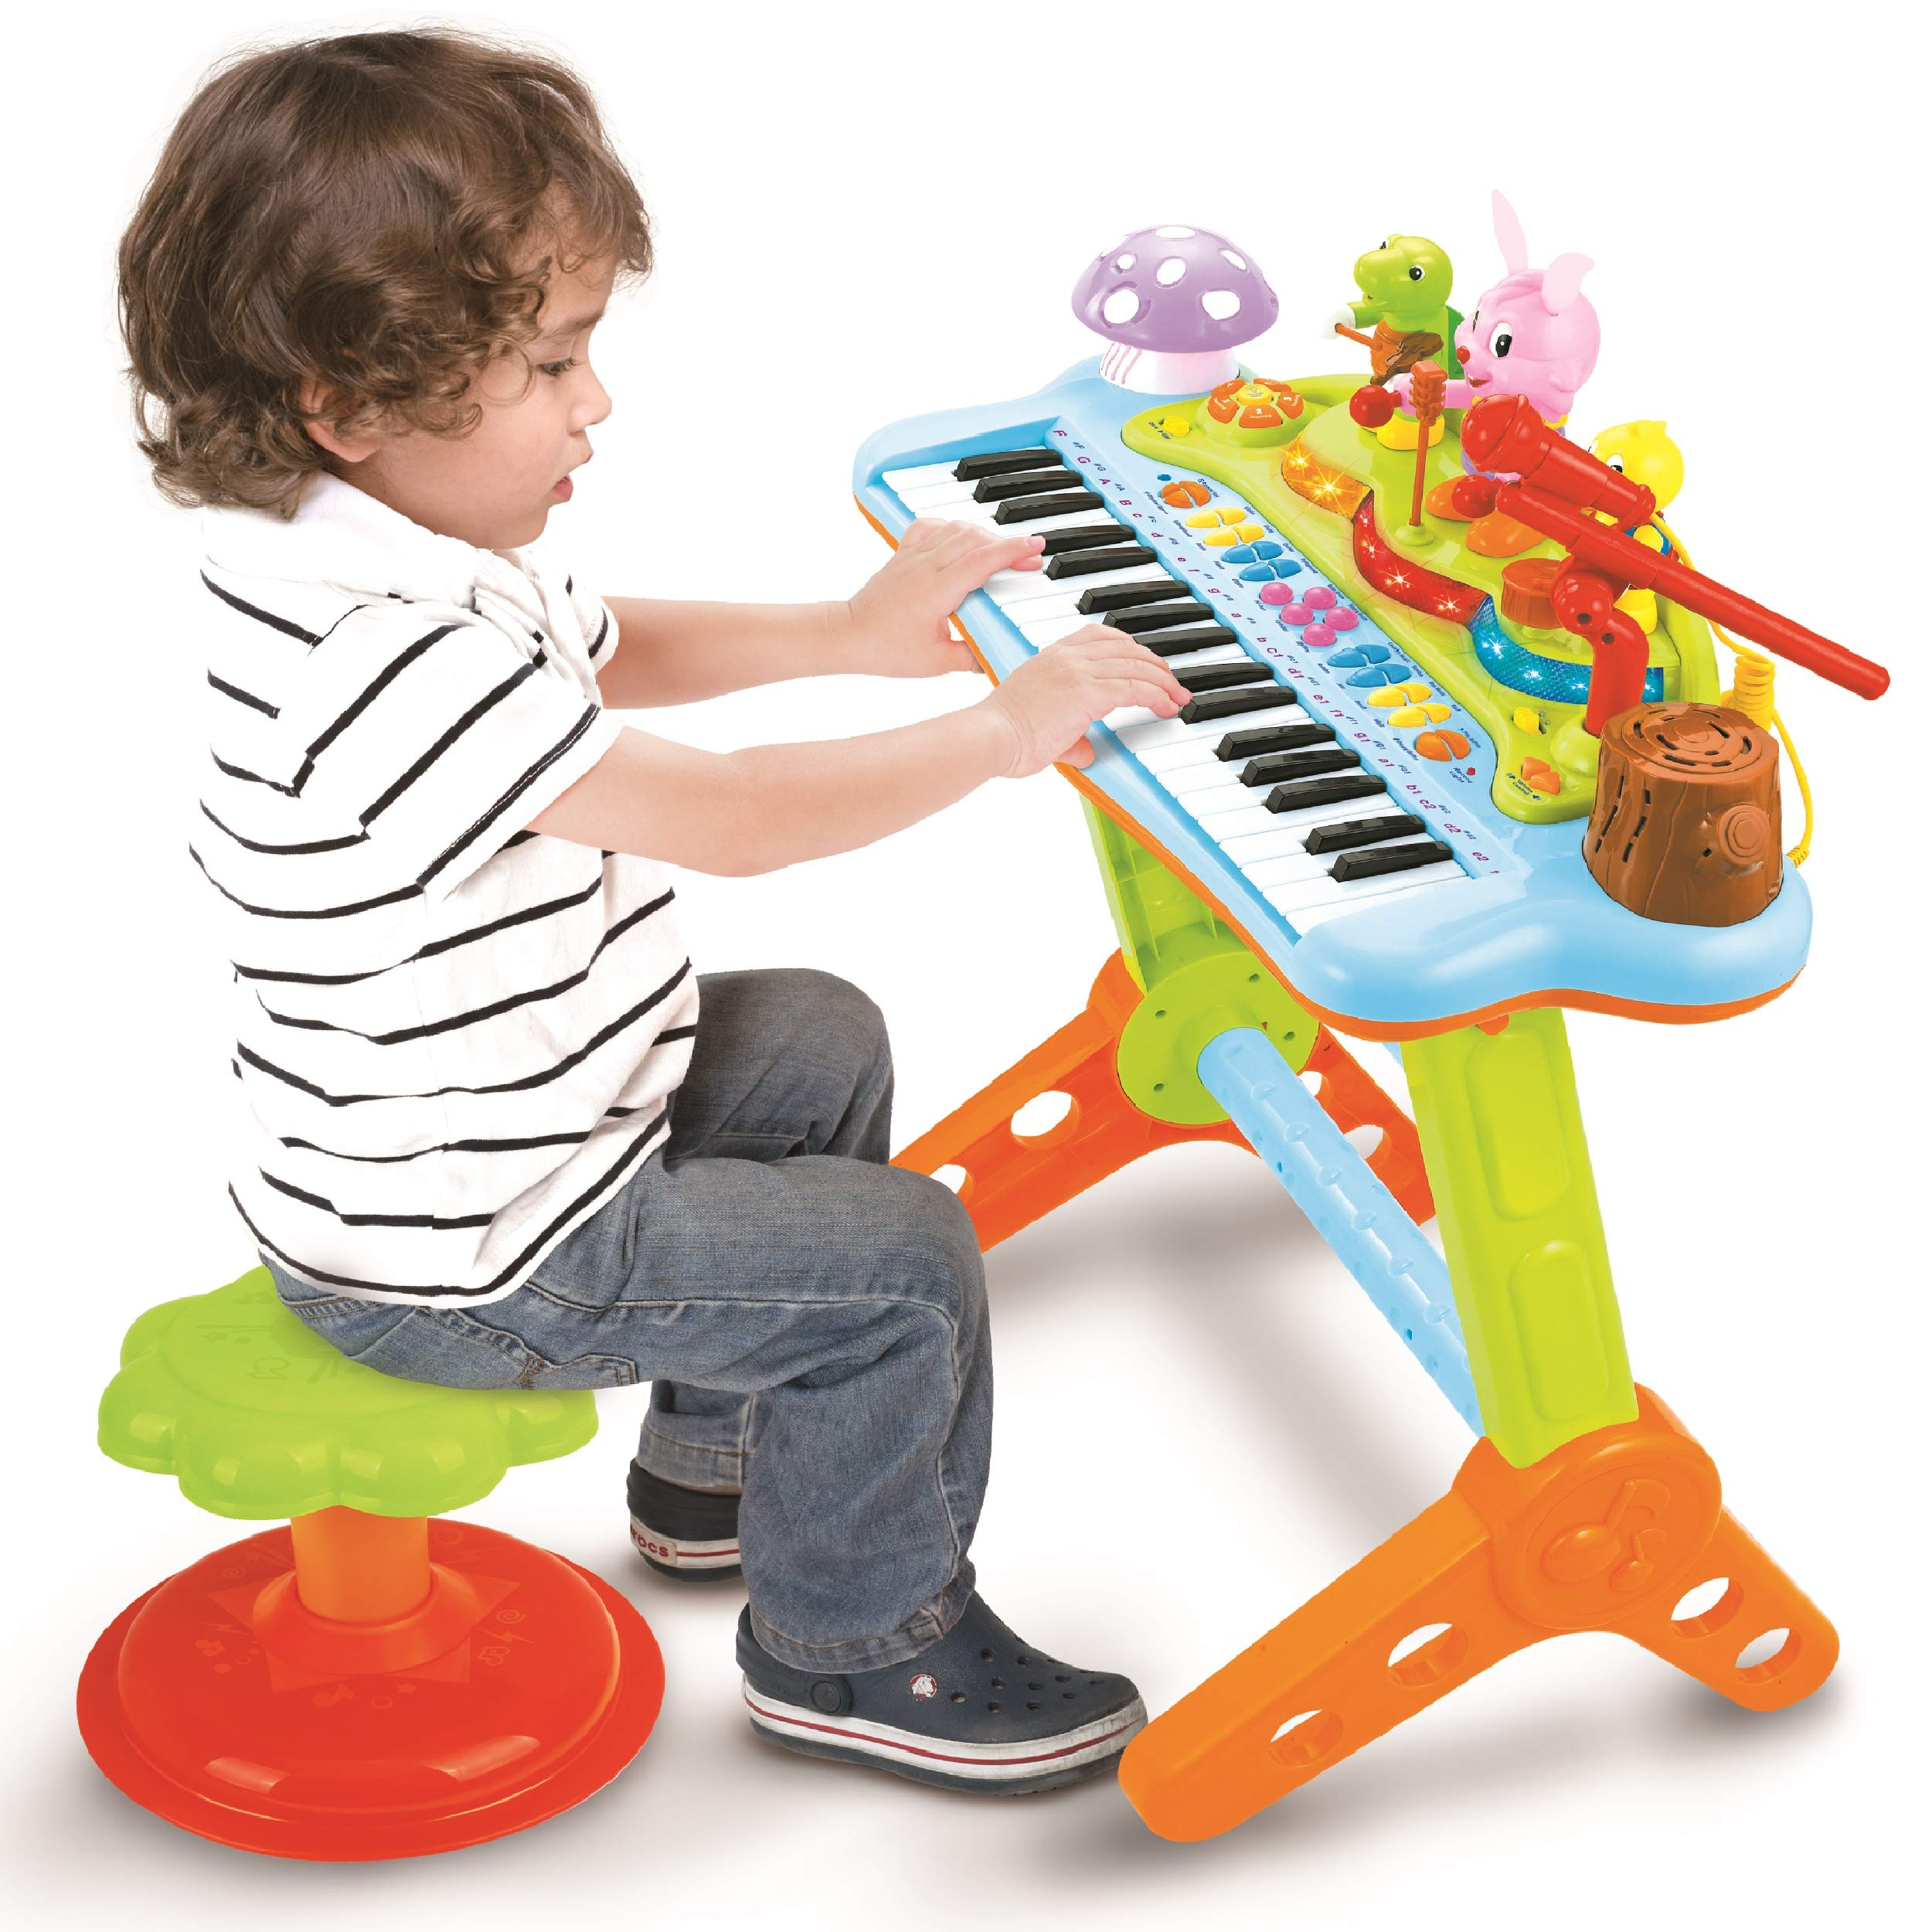 Prextex Toy Piano Keyboard for Kids with Real Working Microphone Electronic Musical Instrument Piano Toy Keyboard with Record and Playback, Synthesizer and Stool by Prextex